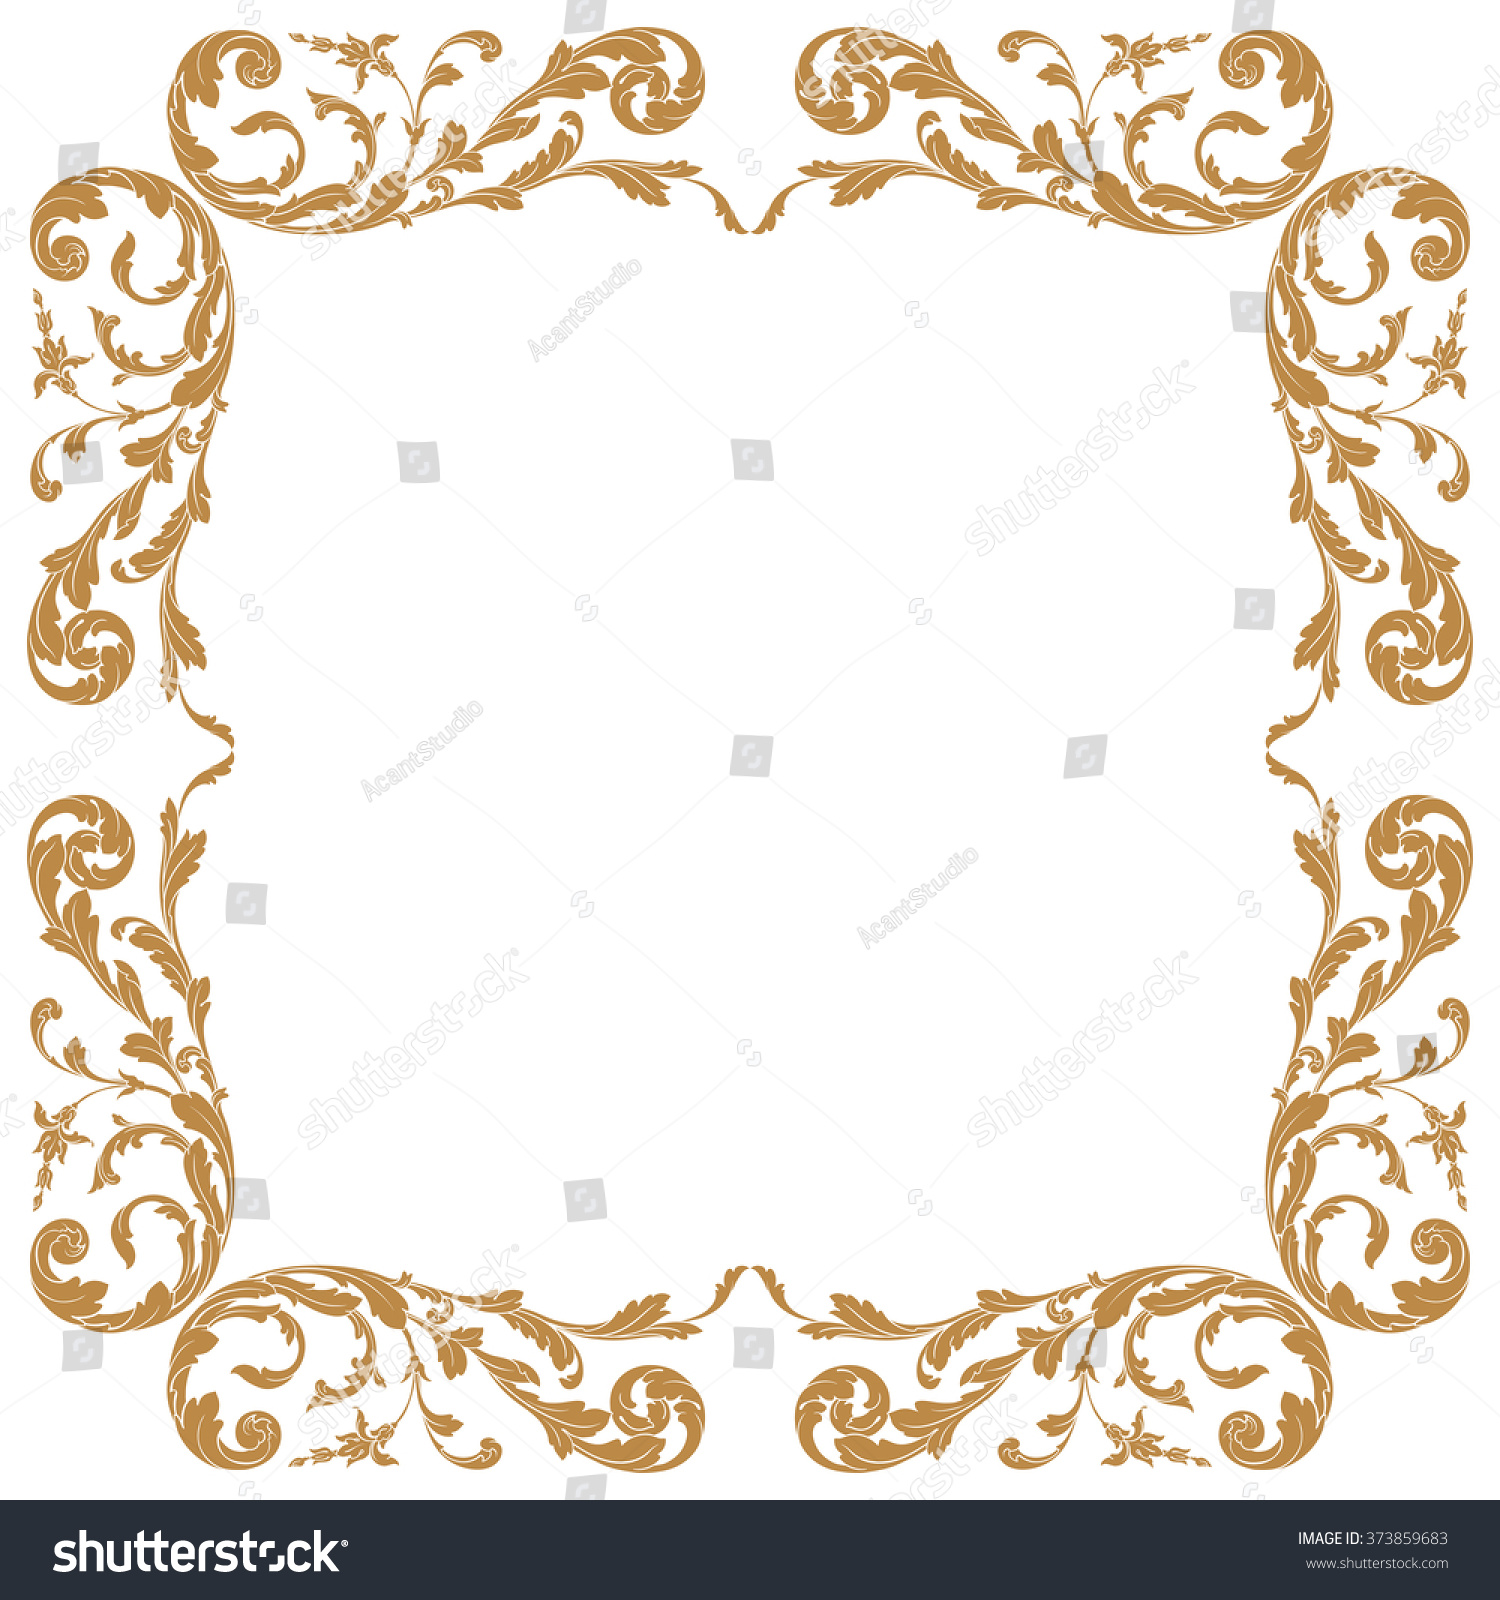 Antique Scroll Design: Premium Gold Vintage Baroque Frame Scroll Stock Vector